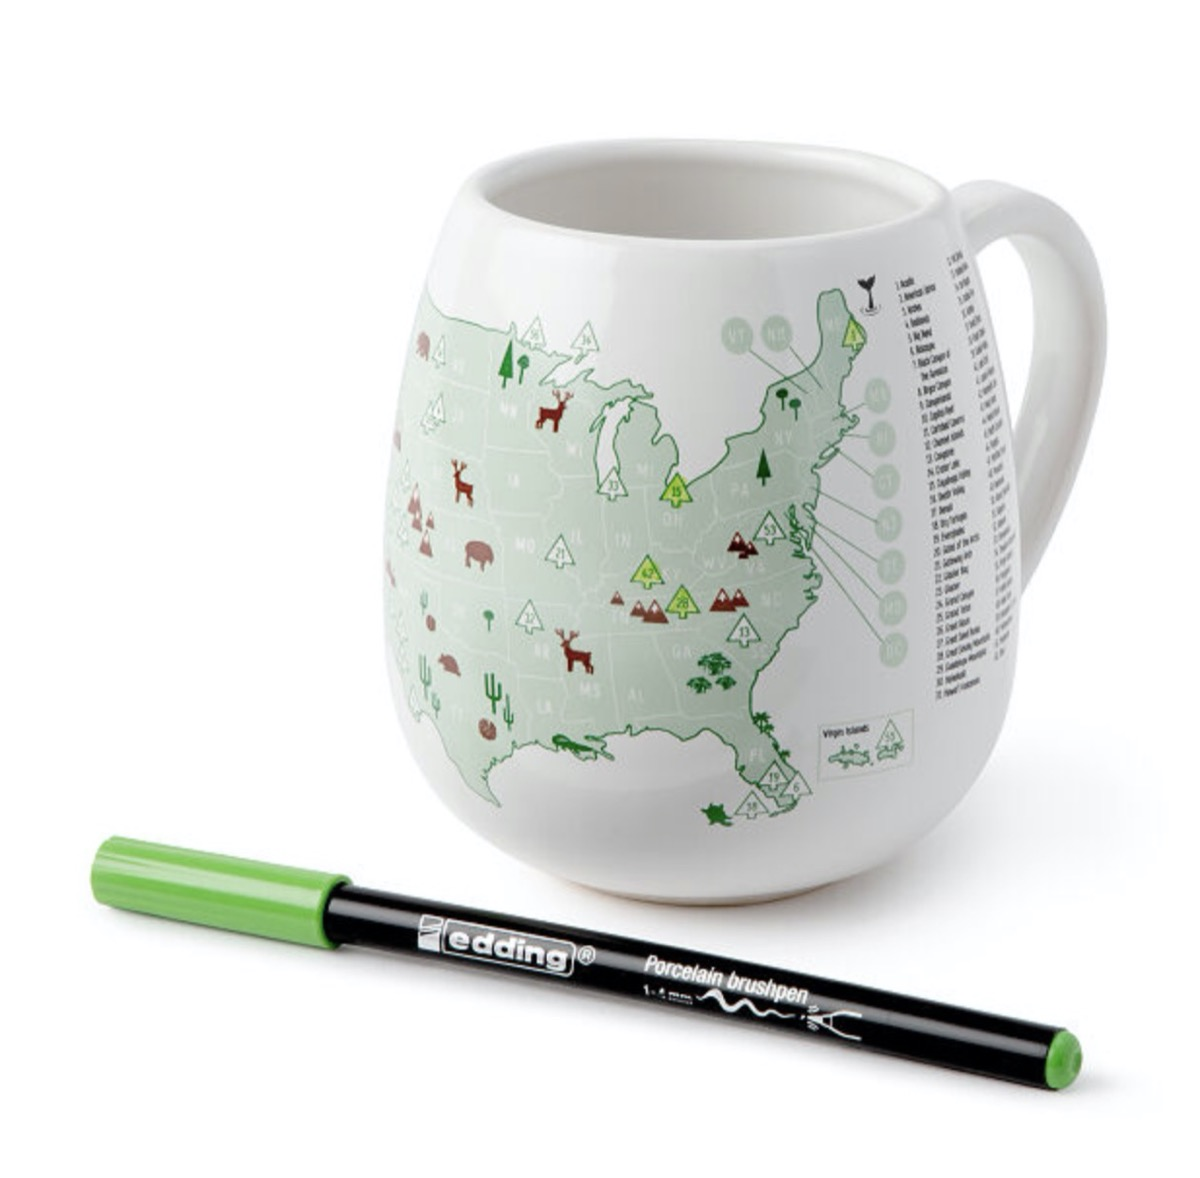 white mug with map of the united states on it in green